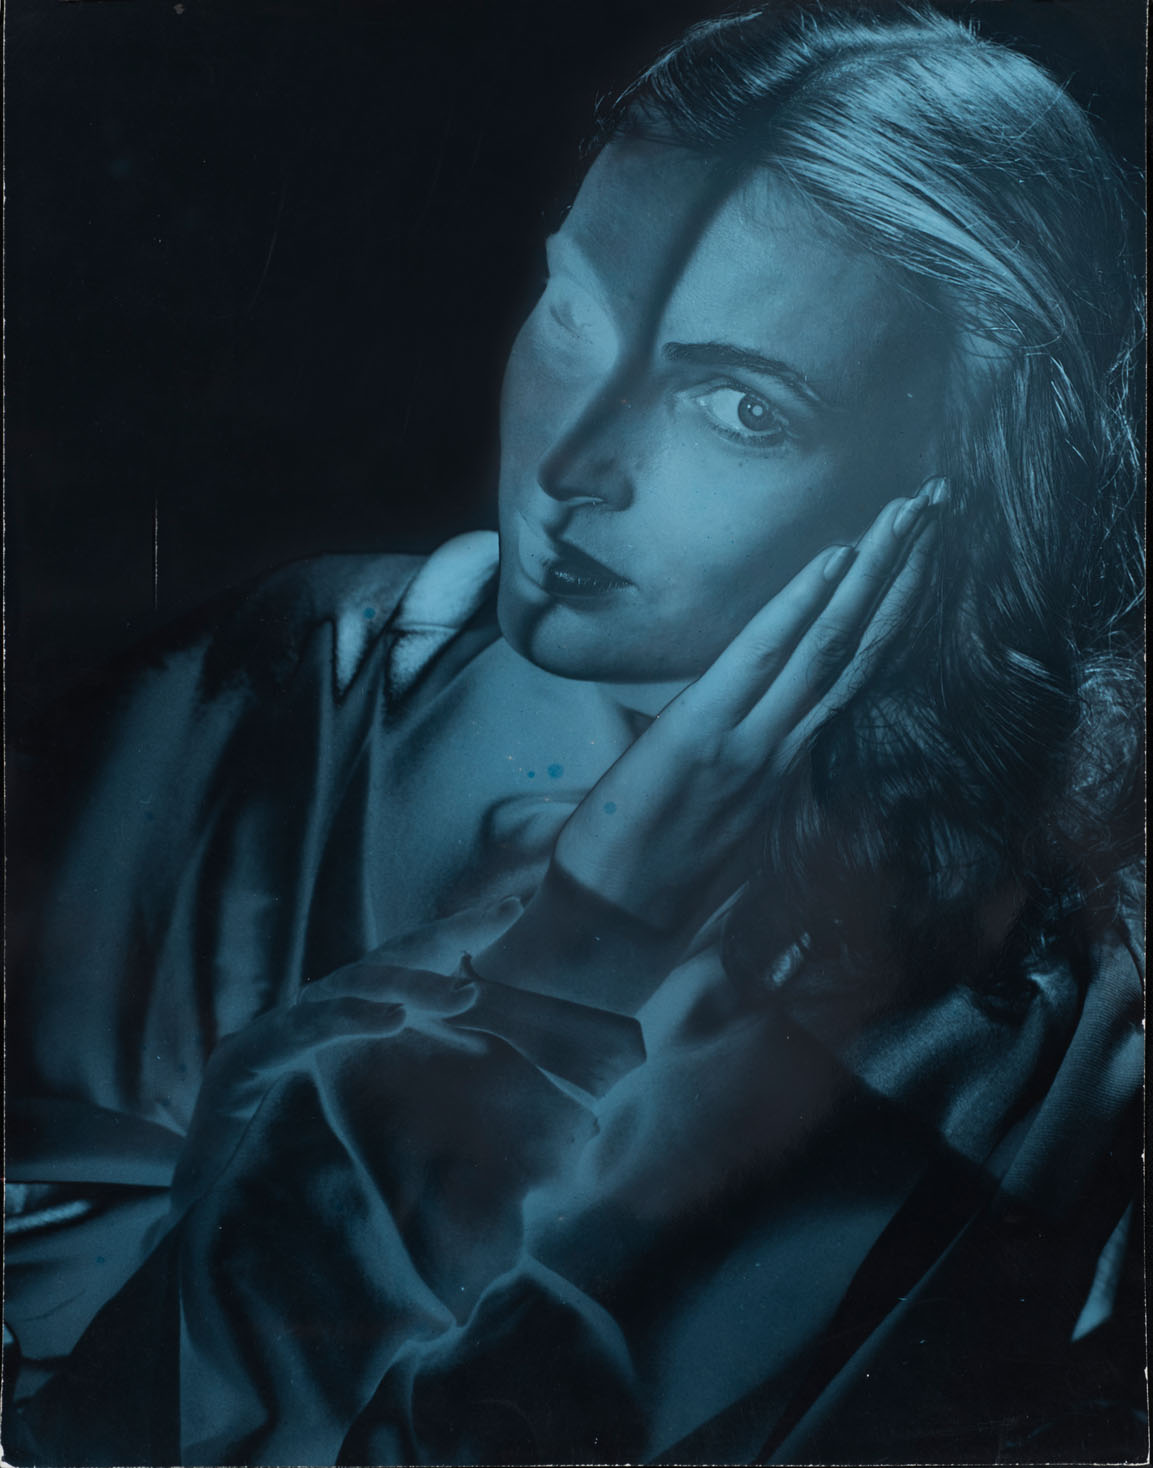 Erwin Blumenfeld, Dyed Blue Solarized model with Face on Hands, New York, 1946, Silver Gelatin Print, Courtesy Osborne Samuel